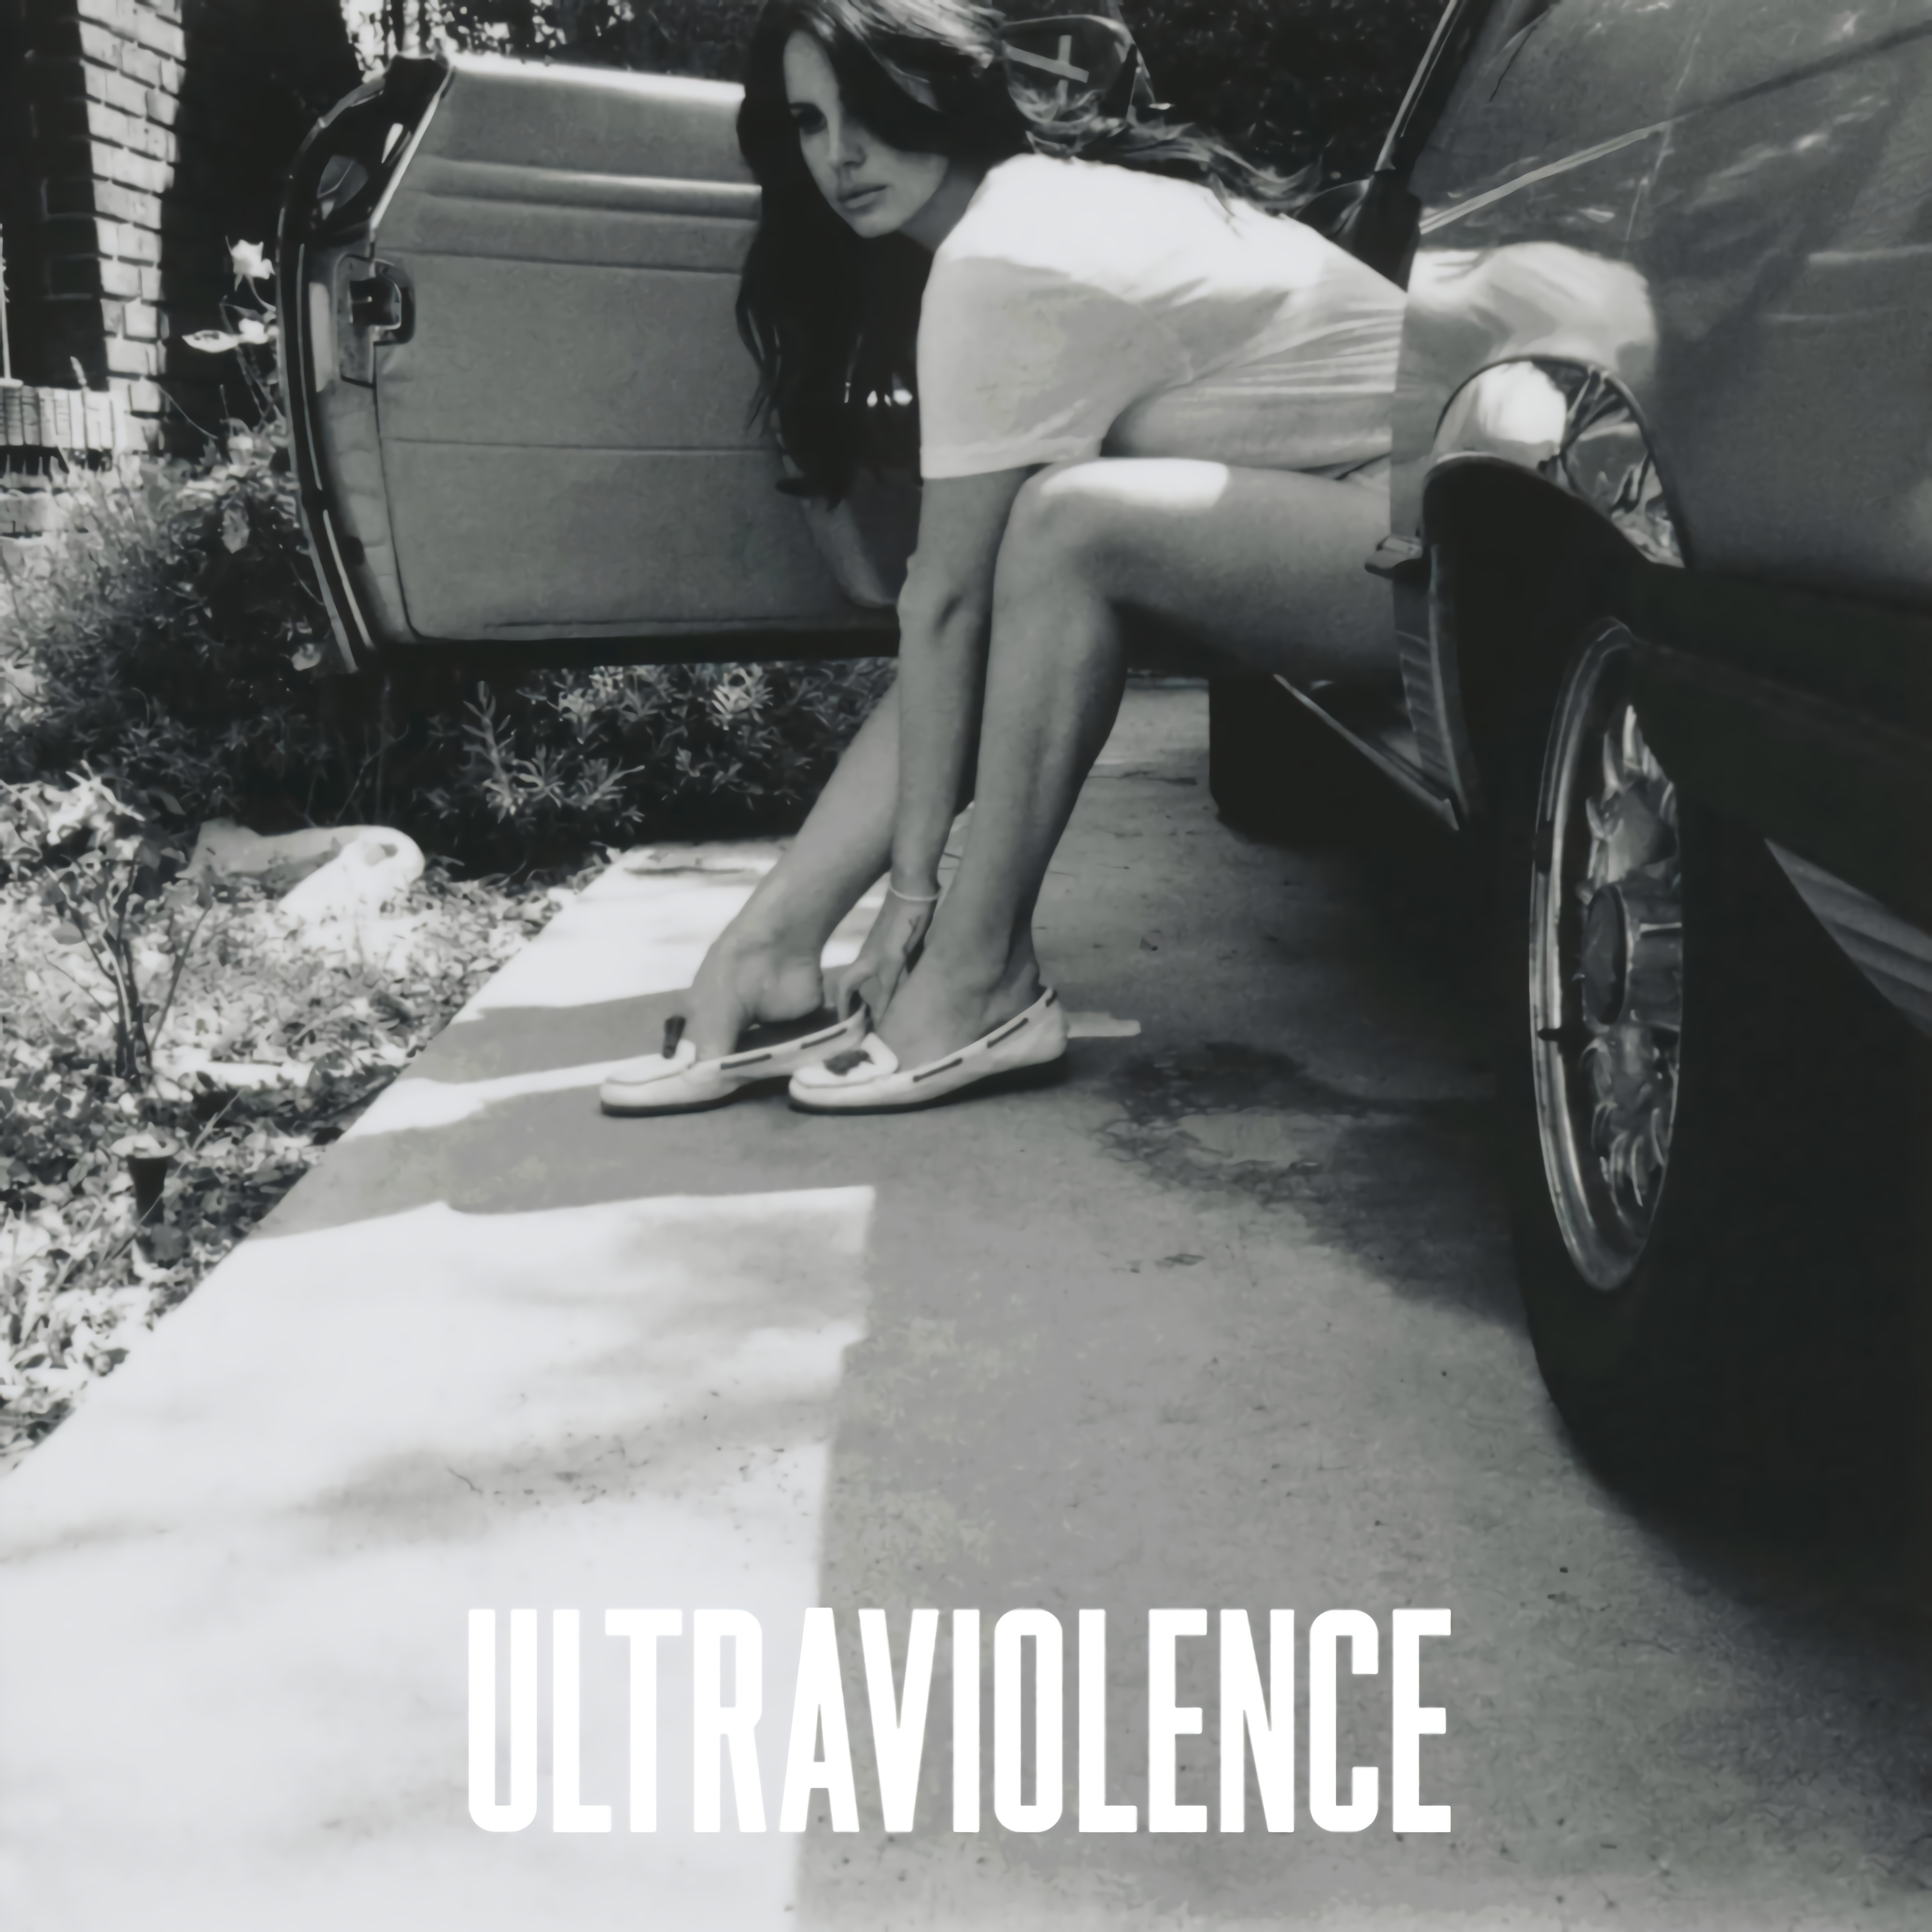 Ultraviolence (song)